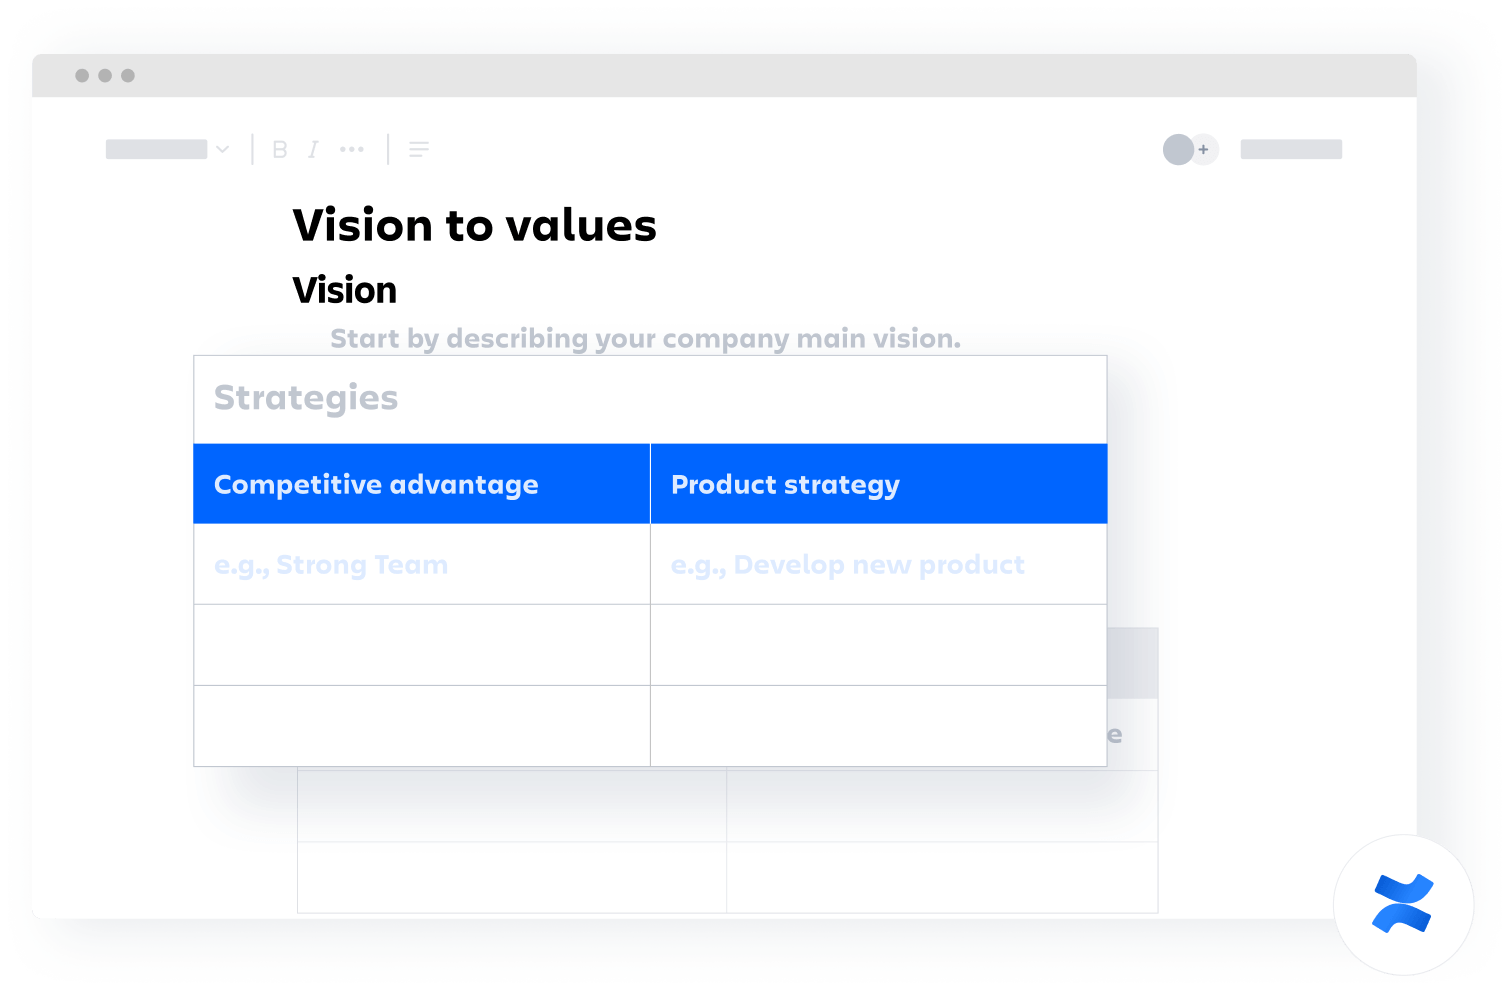 Vision to values confluence template